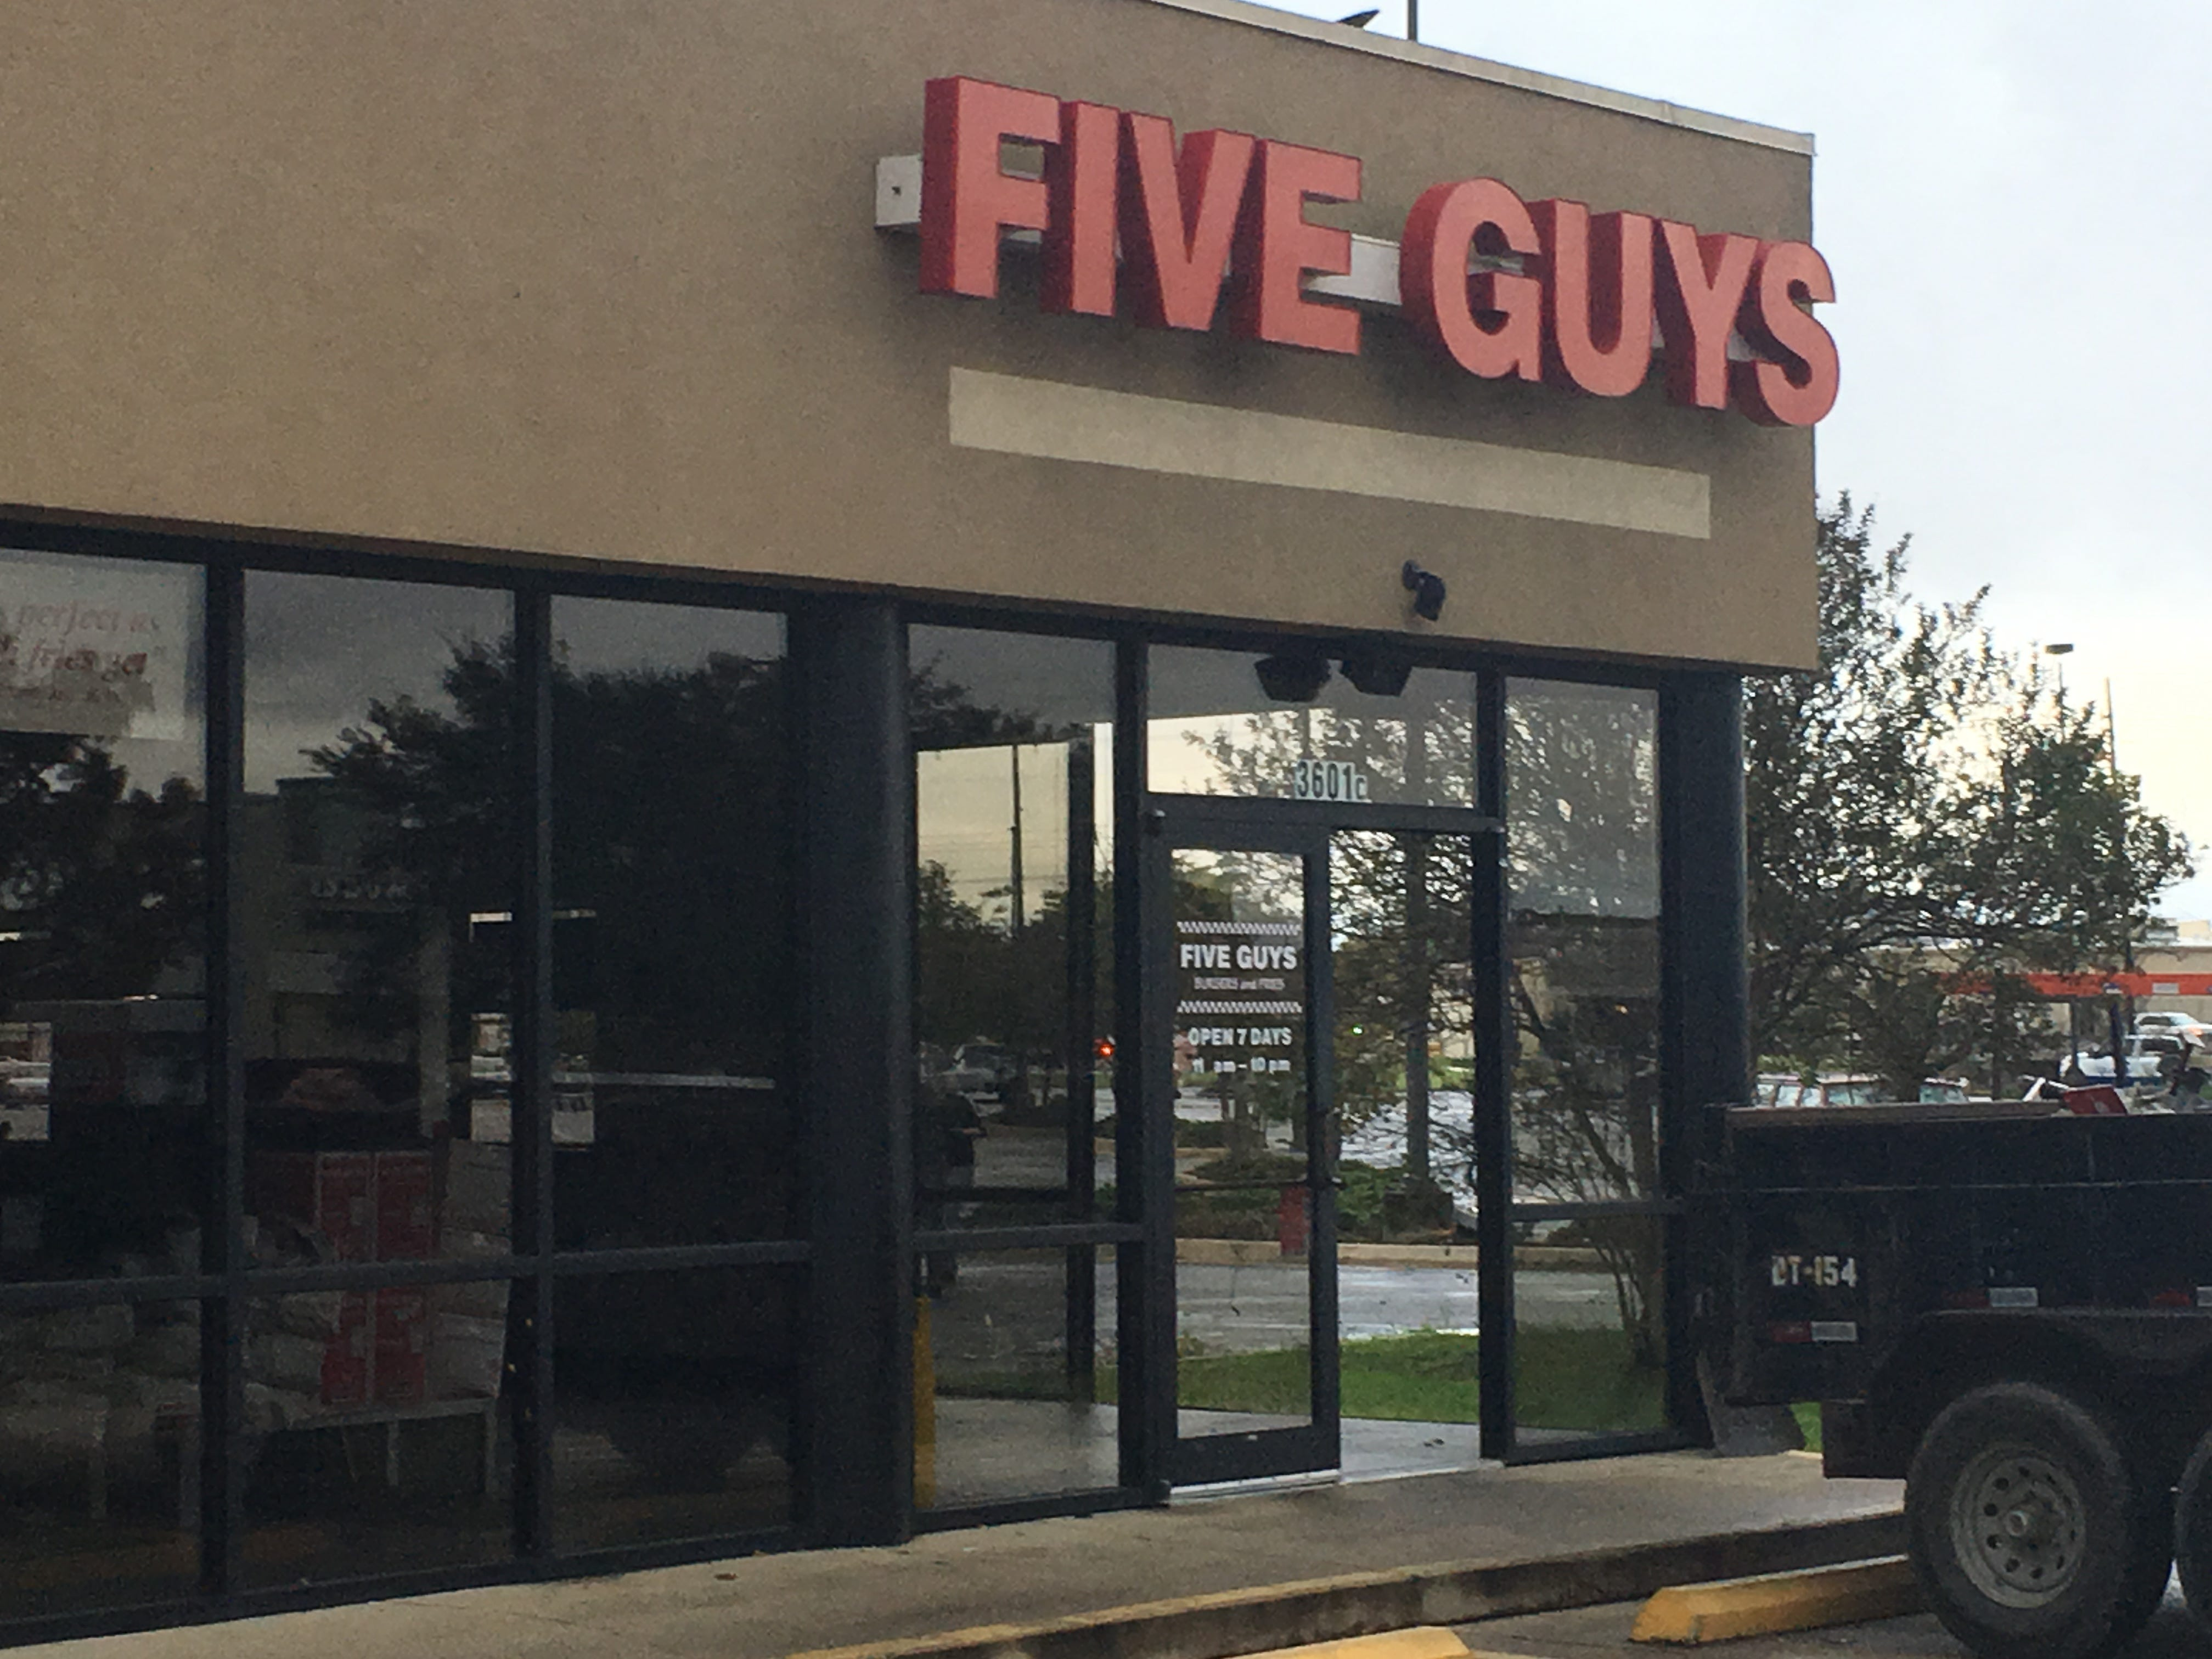 The front door, a side wall and the roof were all damaged at the Five Guys restaurant on North Boulevard.